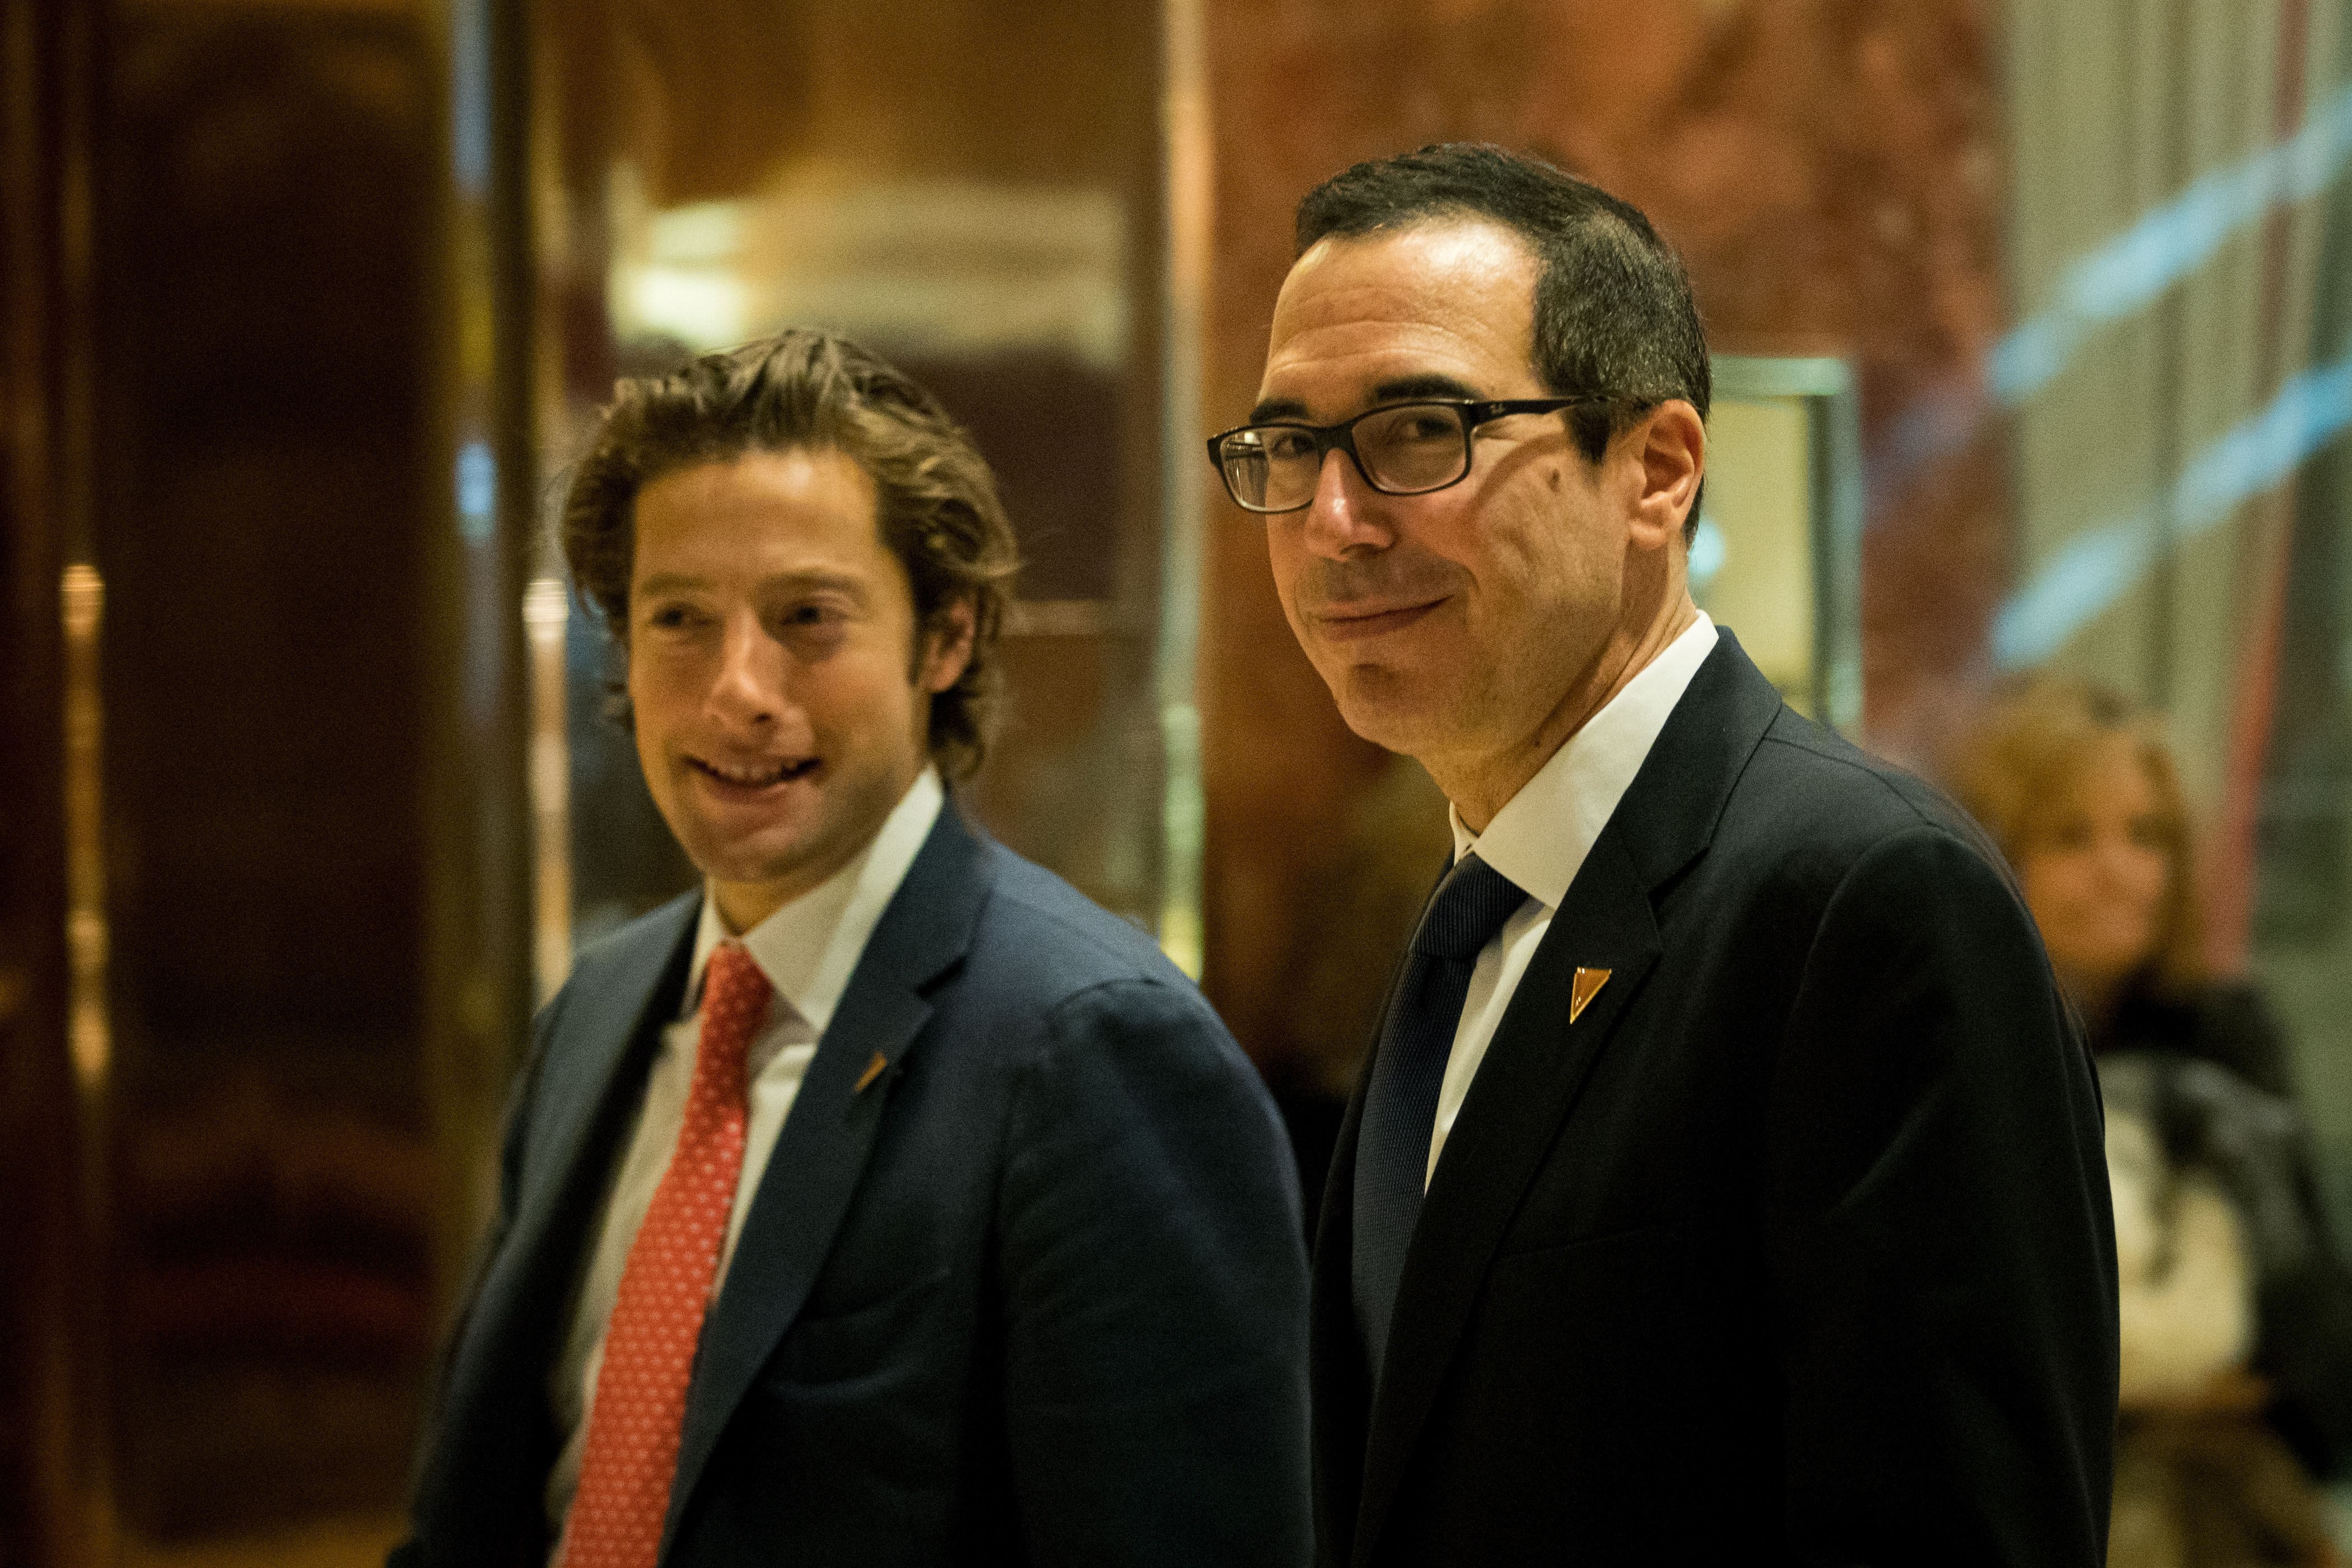 Eli Miller, left, chief operating officer of the Trump campaign, and Steve Mnuchin, national finance chairman for the Trump campaign, arrive at Trump Tower, November 29, 2016 in New York City. President-elect Donald Trump and his transition team are in the process of filling cabinet and other high level positions for the new administration. (Drew Angerer/Getty Images)